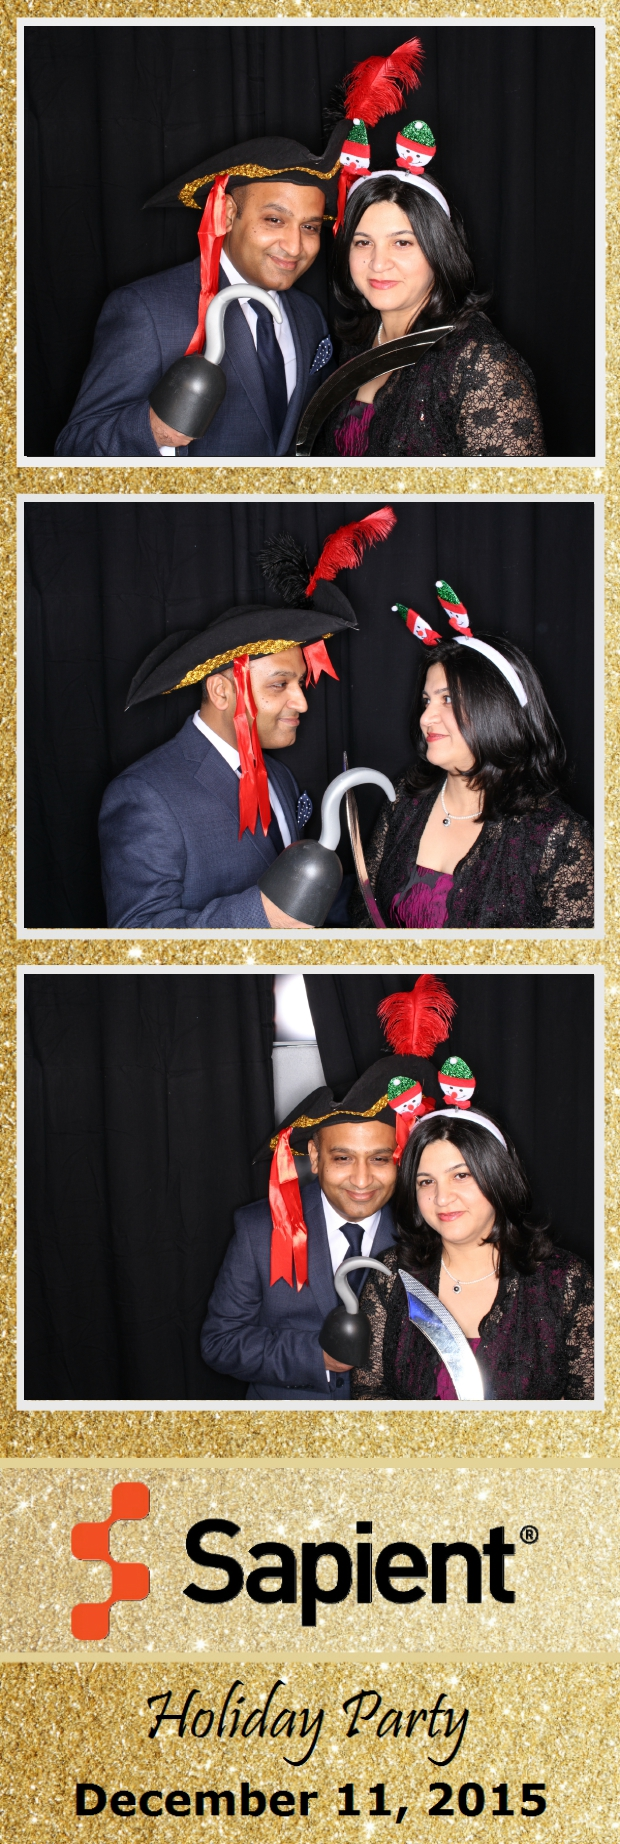 Guest House Events Photo Booth Sapient Holiday Party (17).jpg